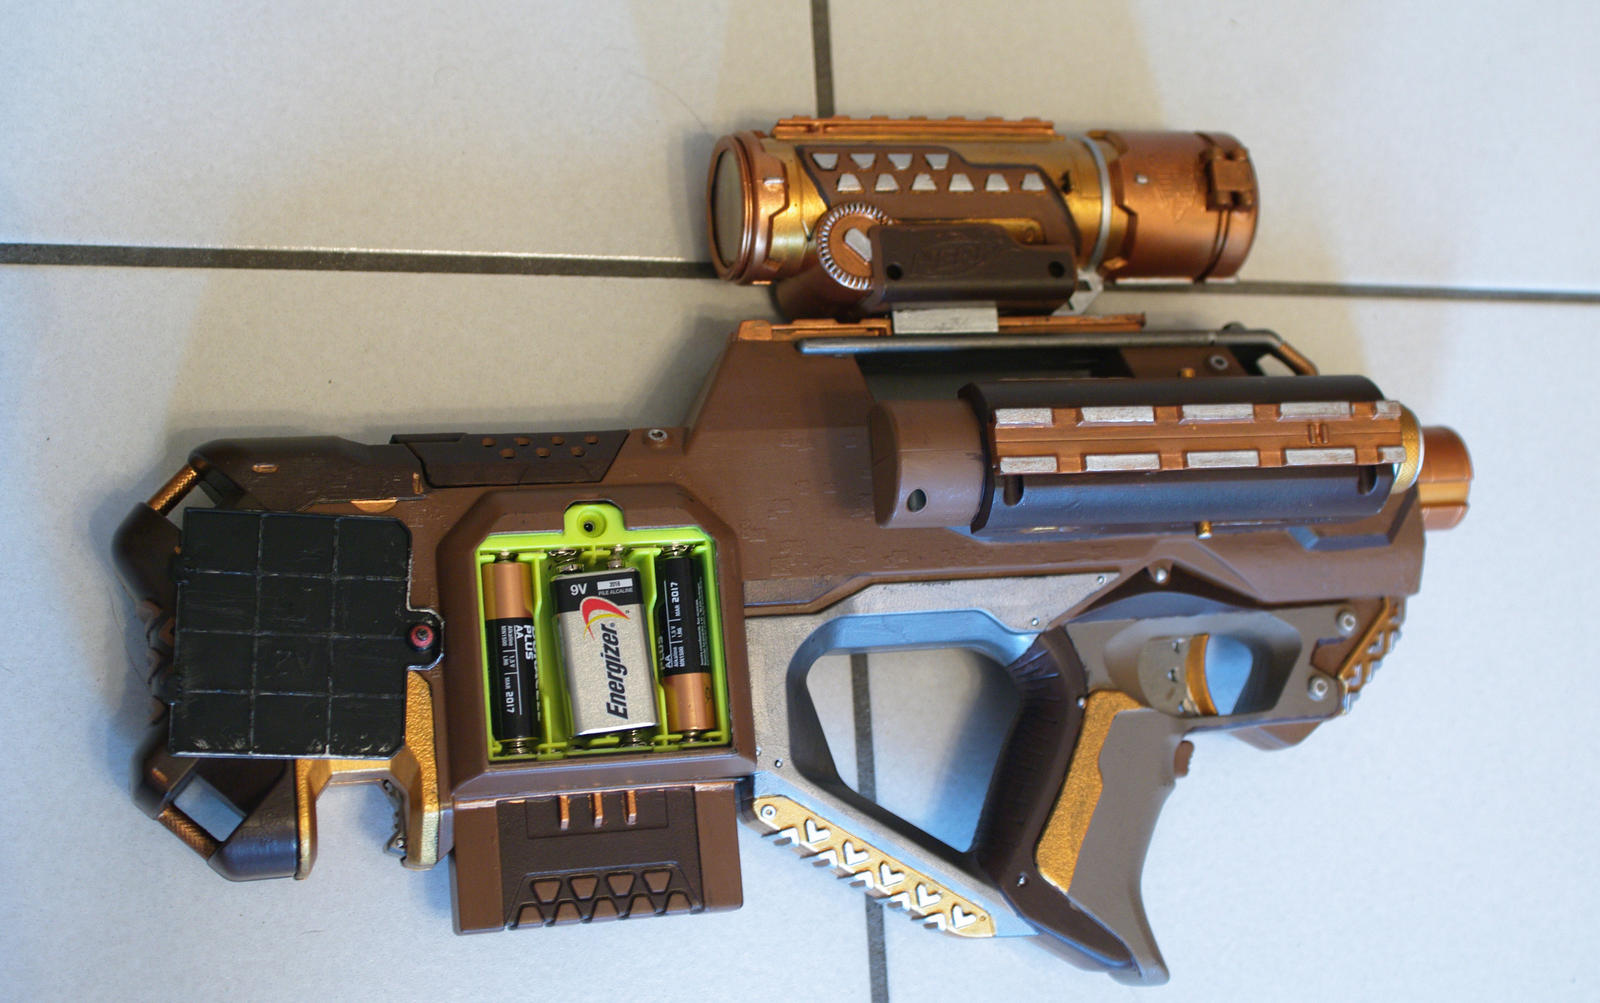 NERF RAYVEN 1.2 by Hultrastronne